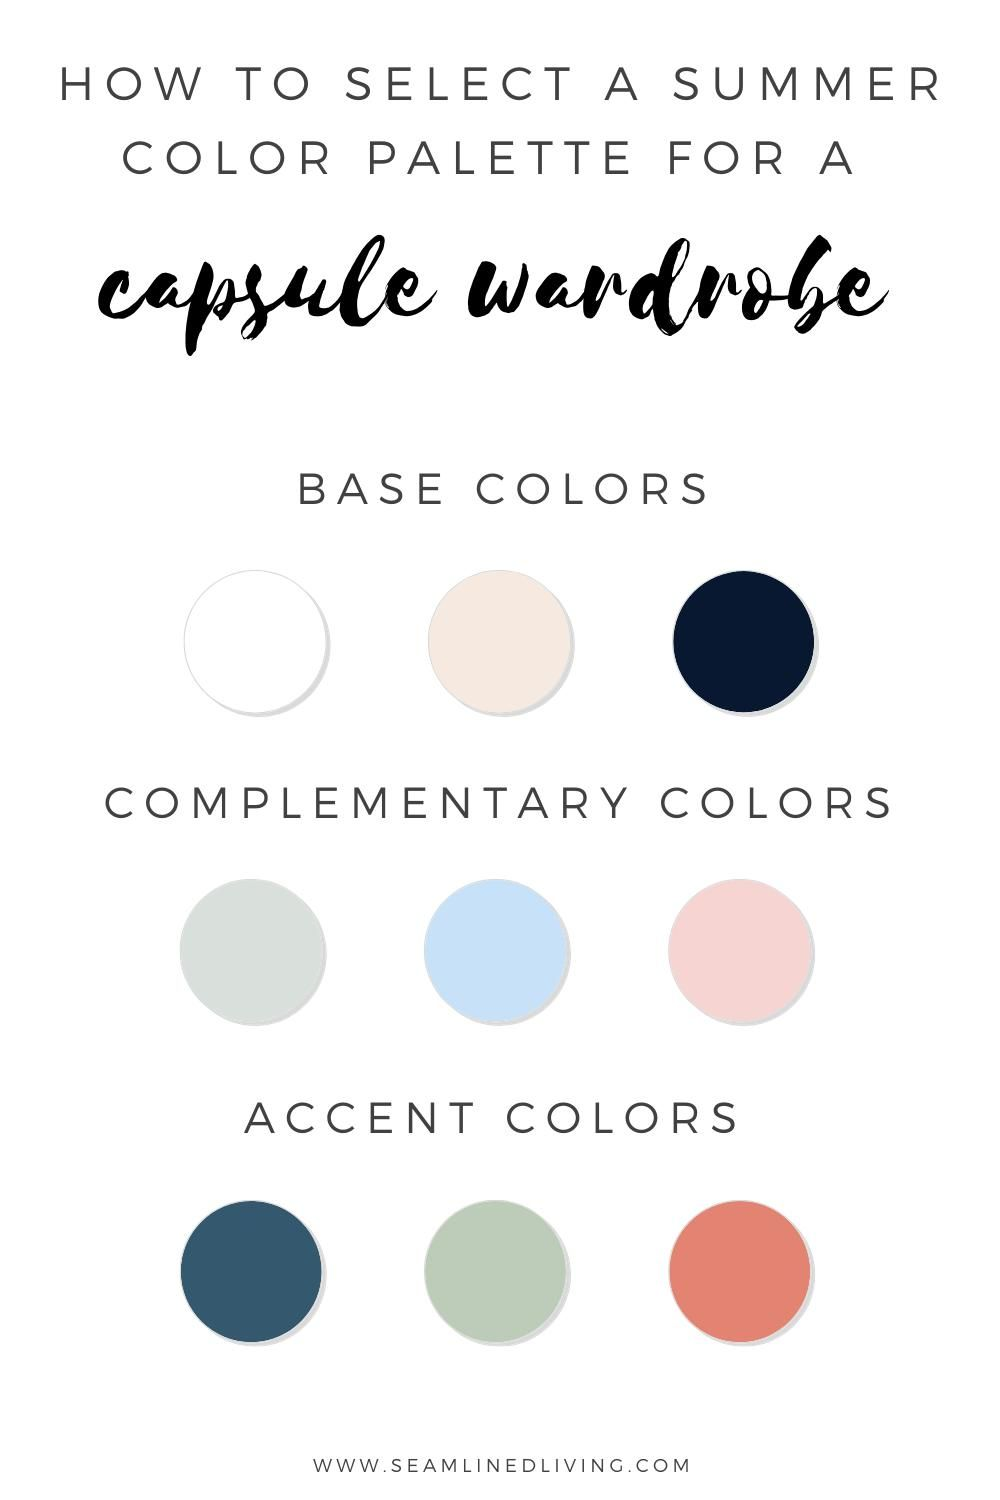 How to Select a Summer Capsule Wardrobe Palette